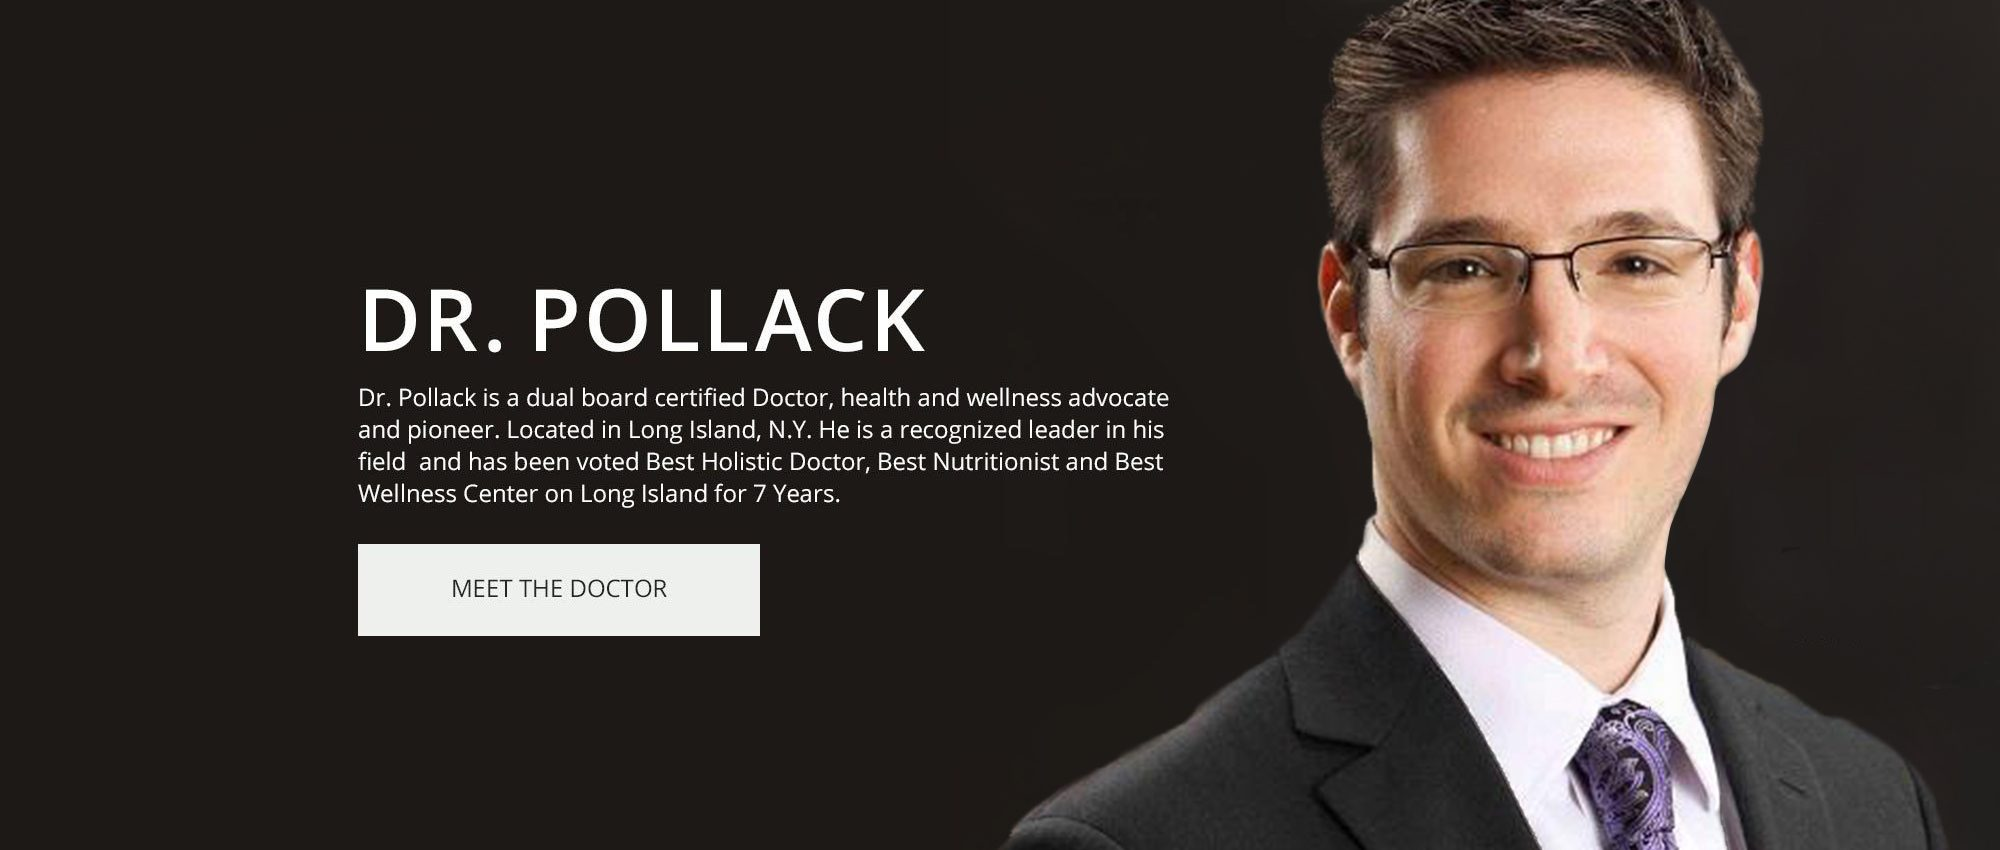 Dr.Pollack